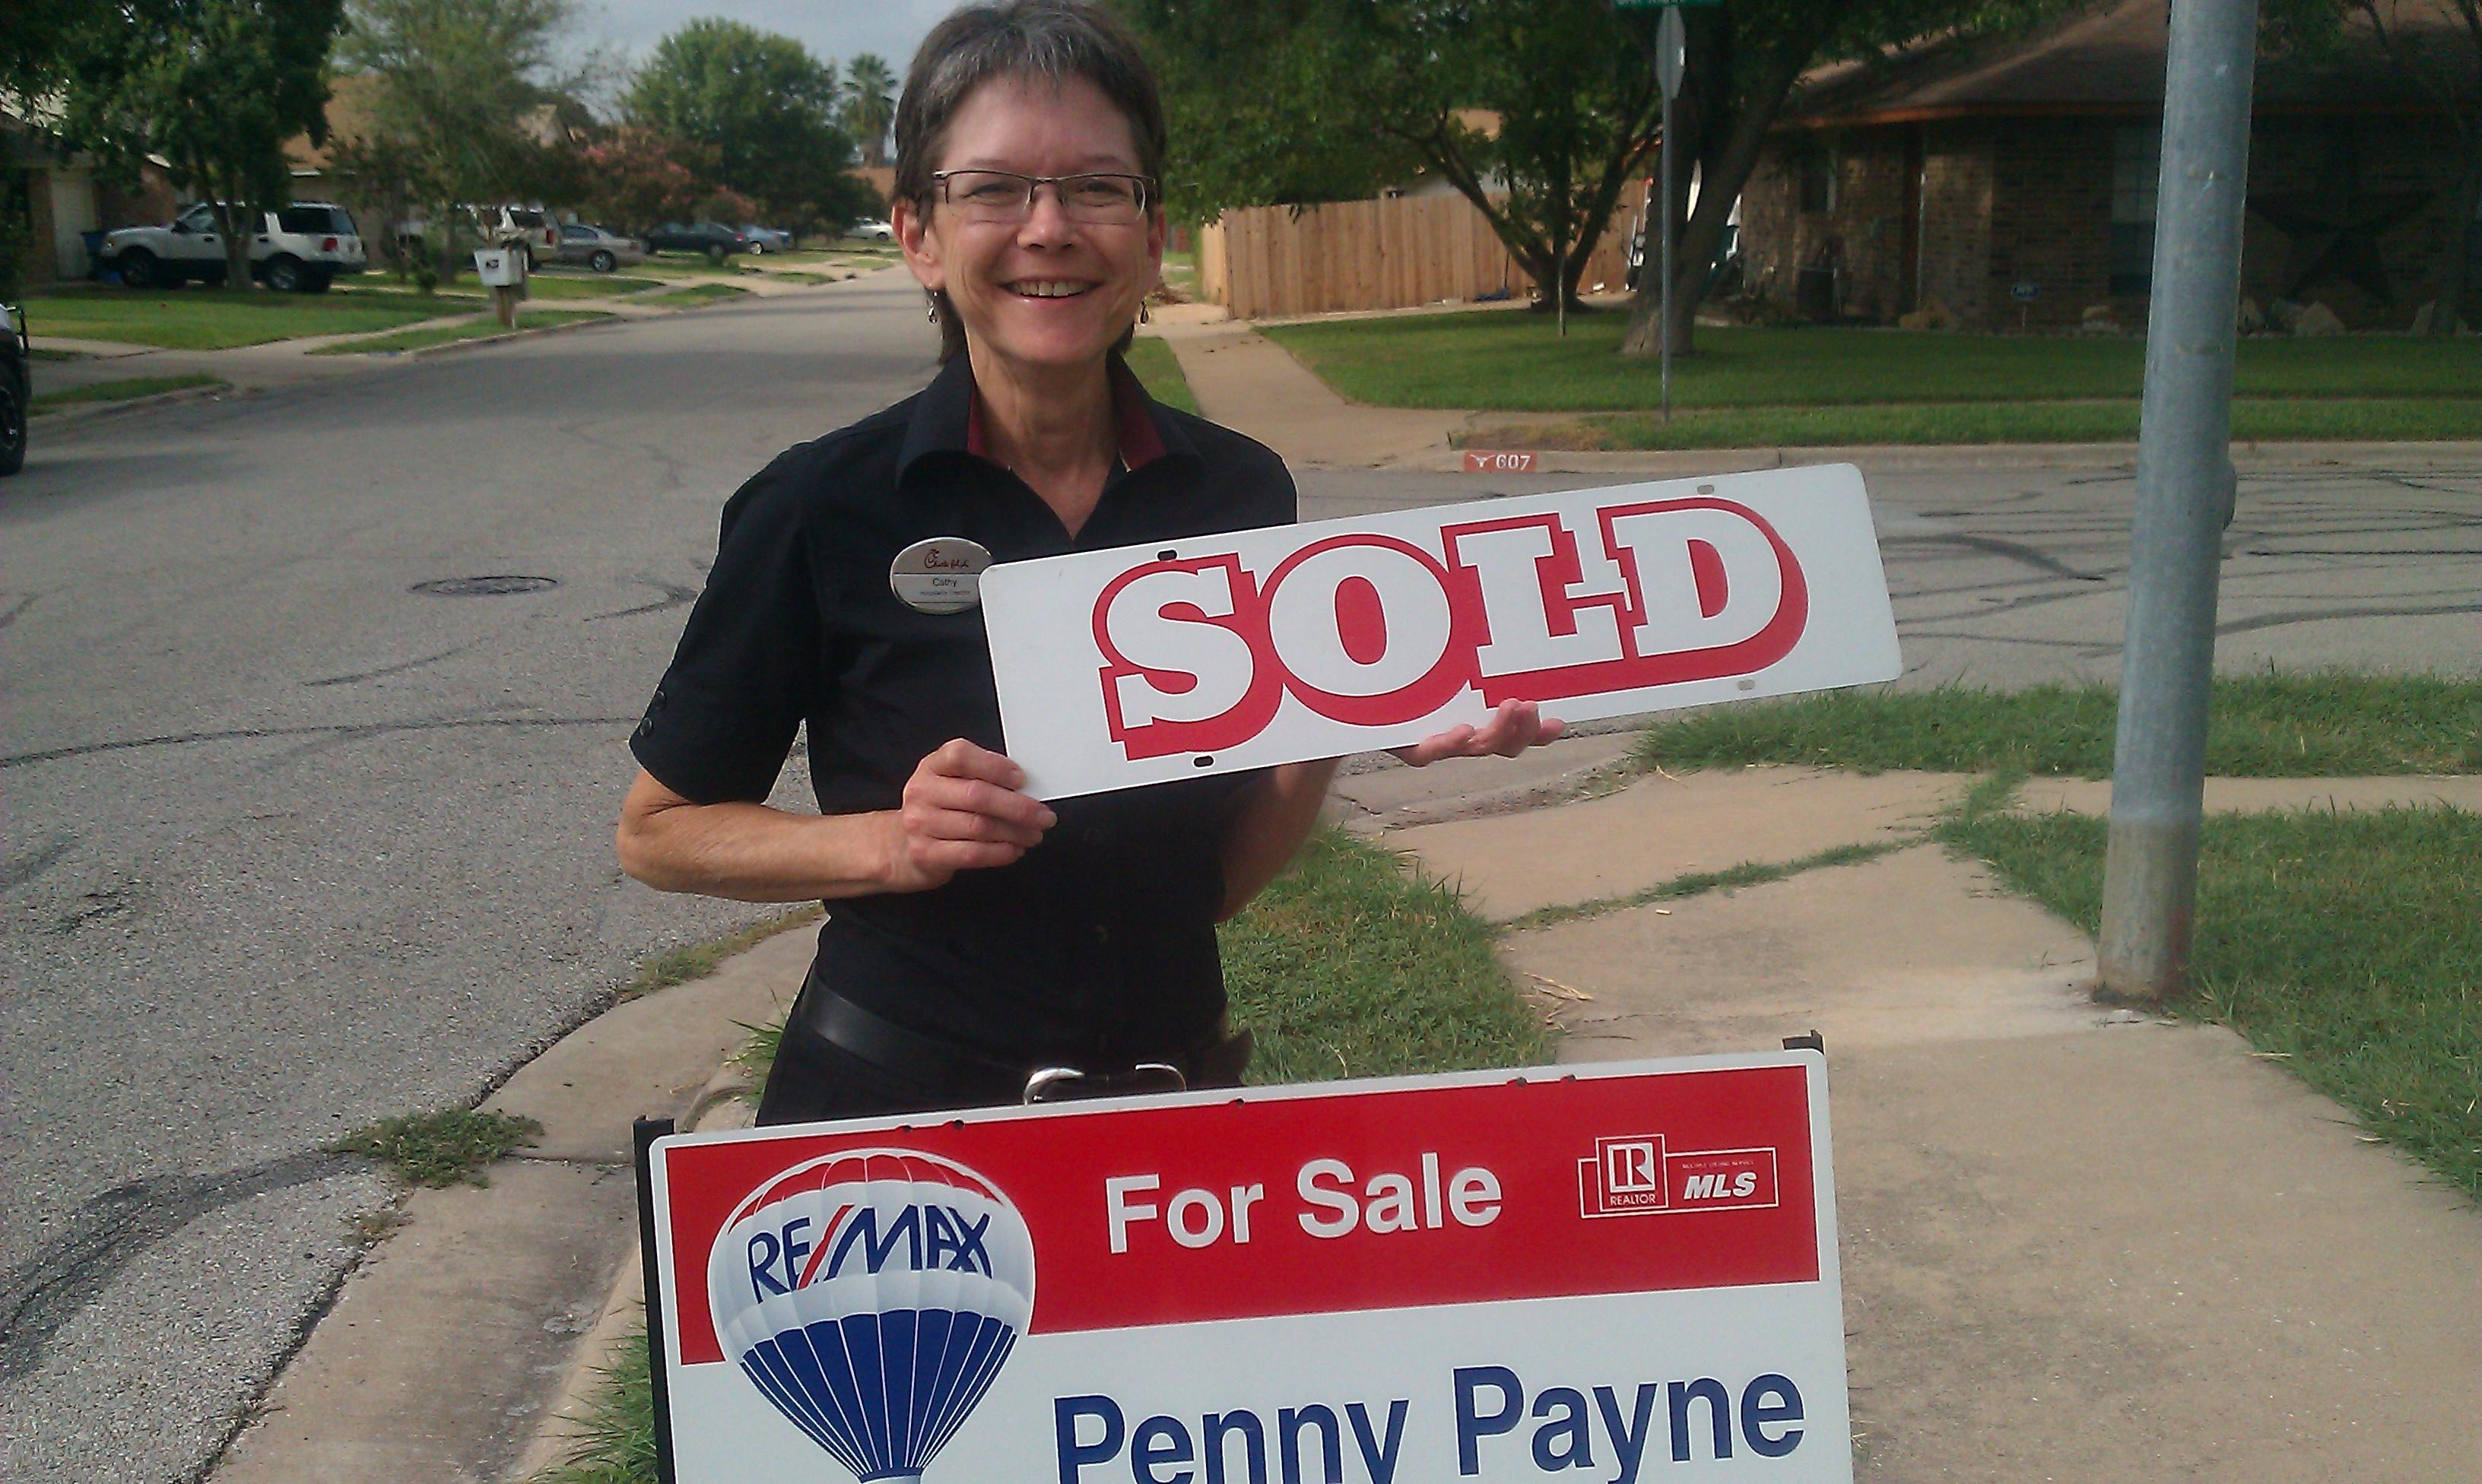 Penny Payne, Equity Texas Realty